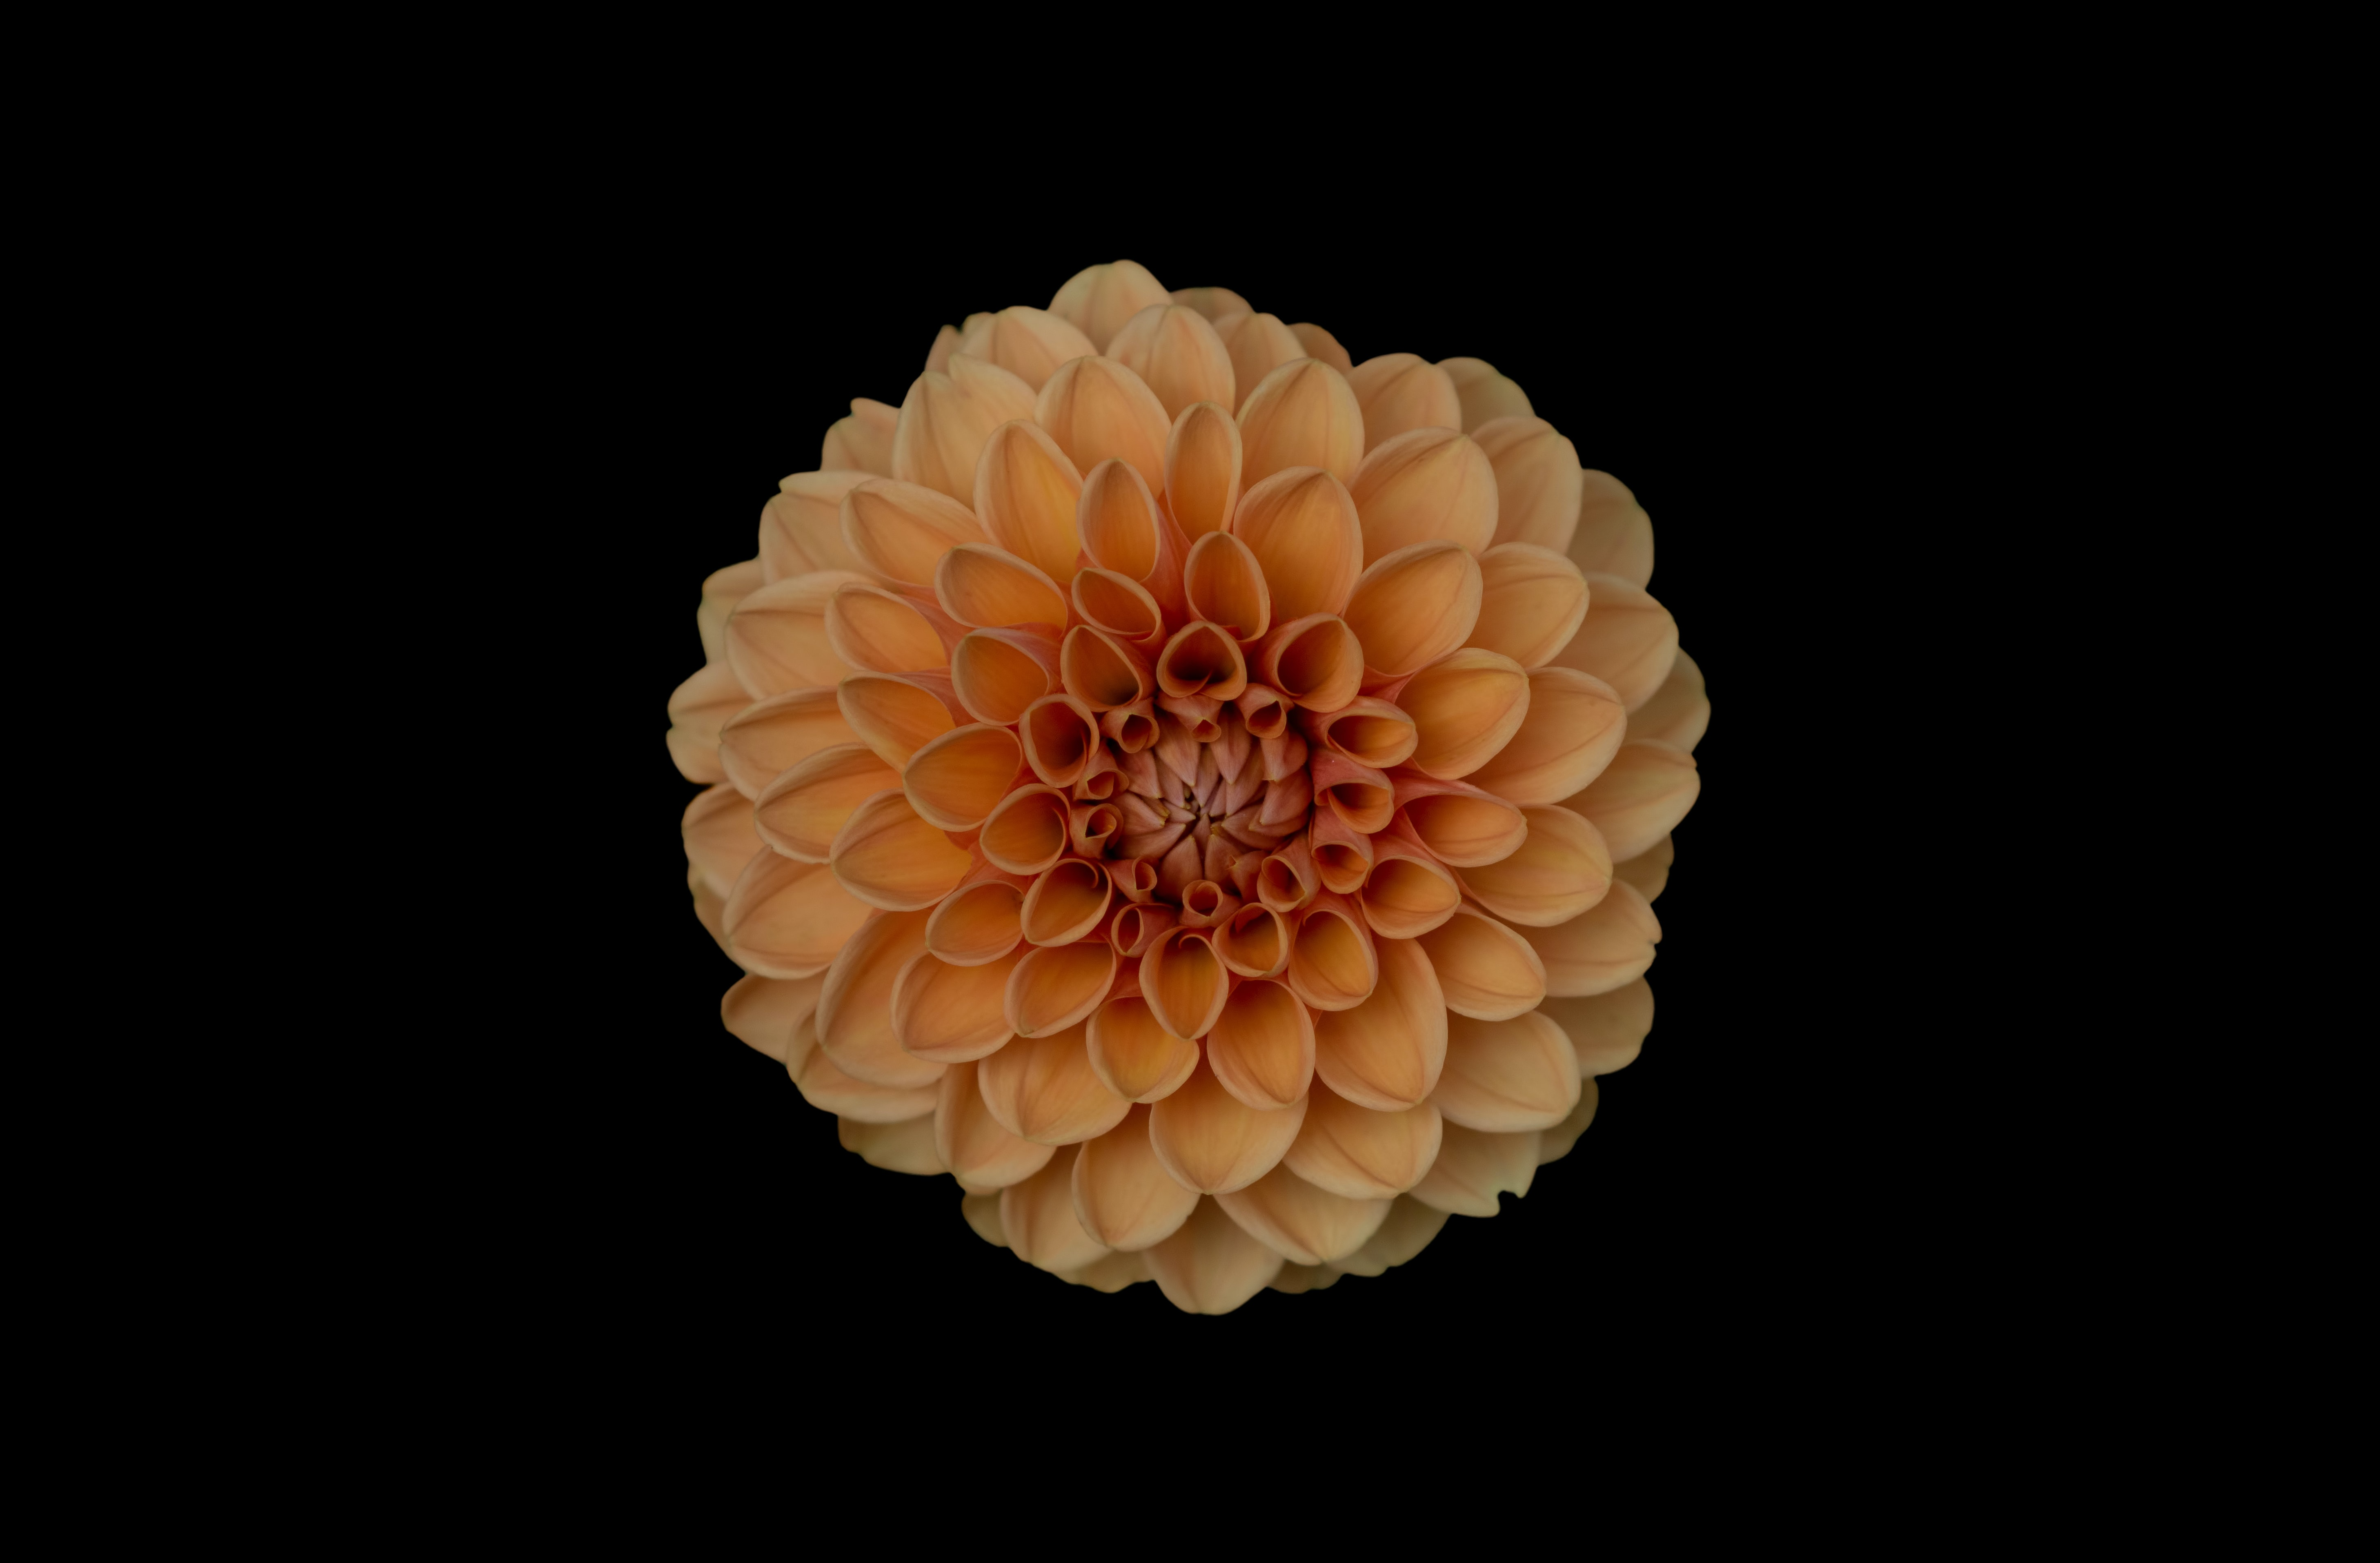 An overhead shot of an orange dahlia against a black background